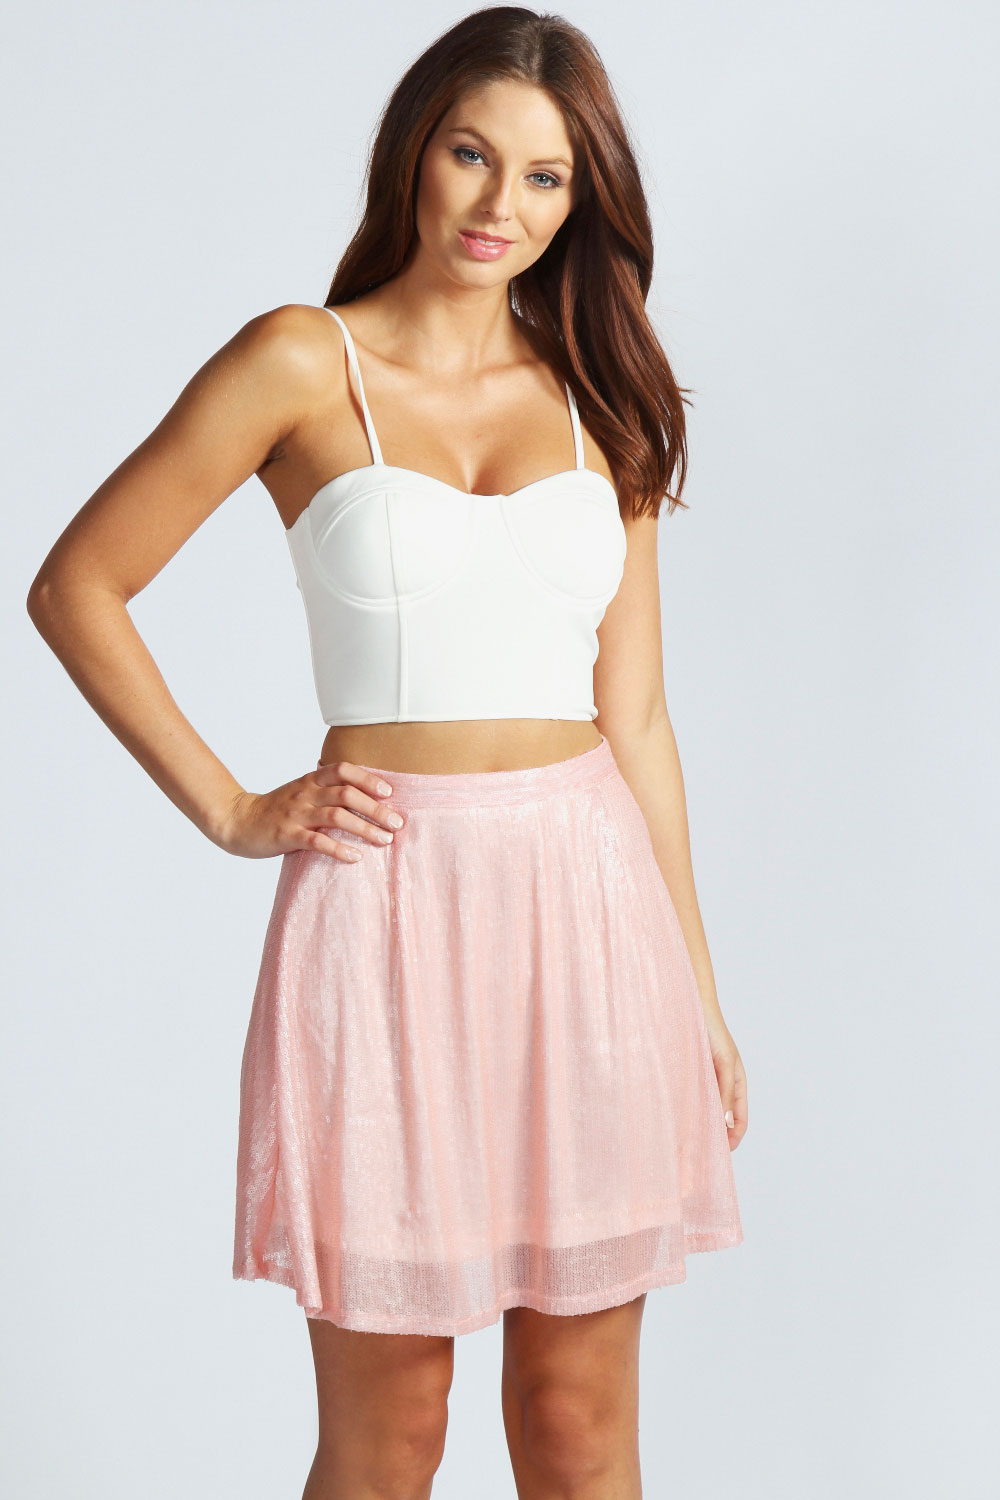 Boohoo Emma Sequin High Waist Short Skater Skirt | eBay